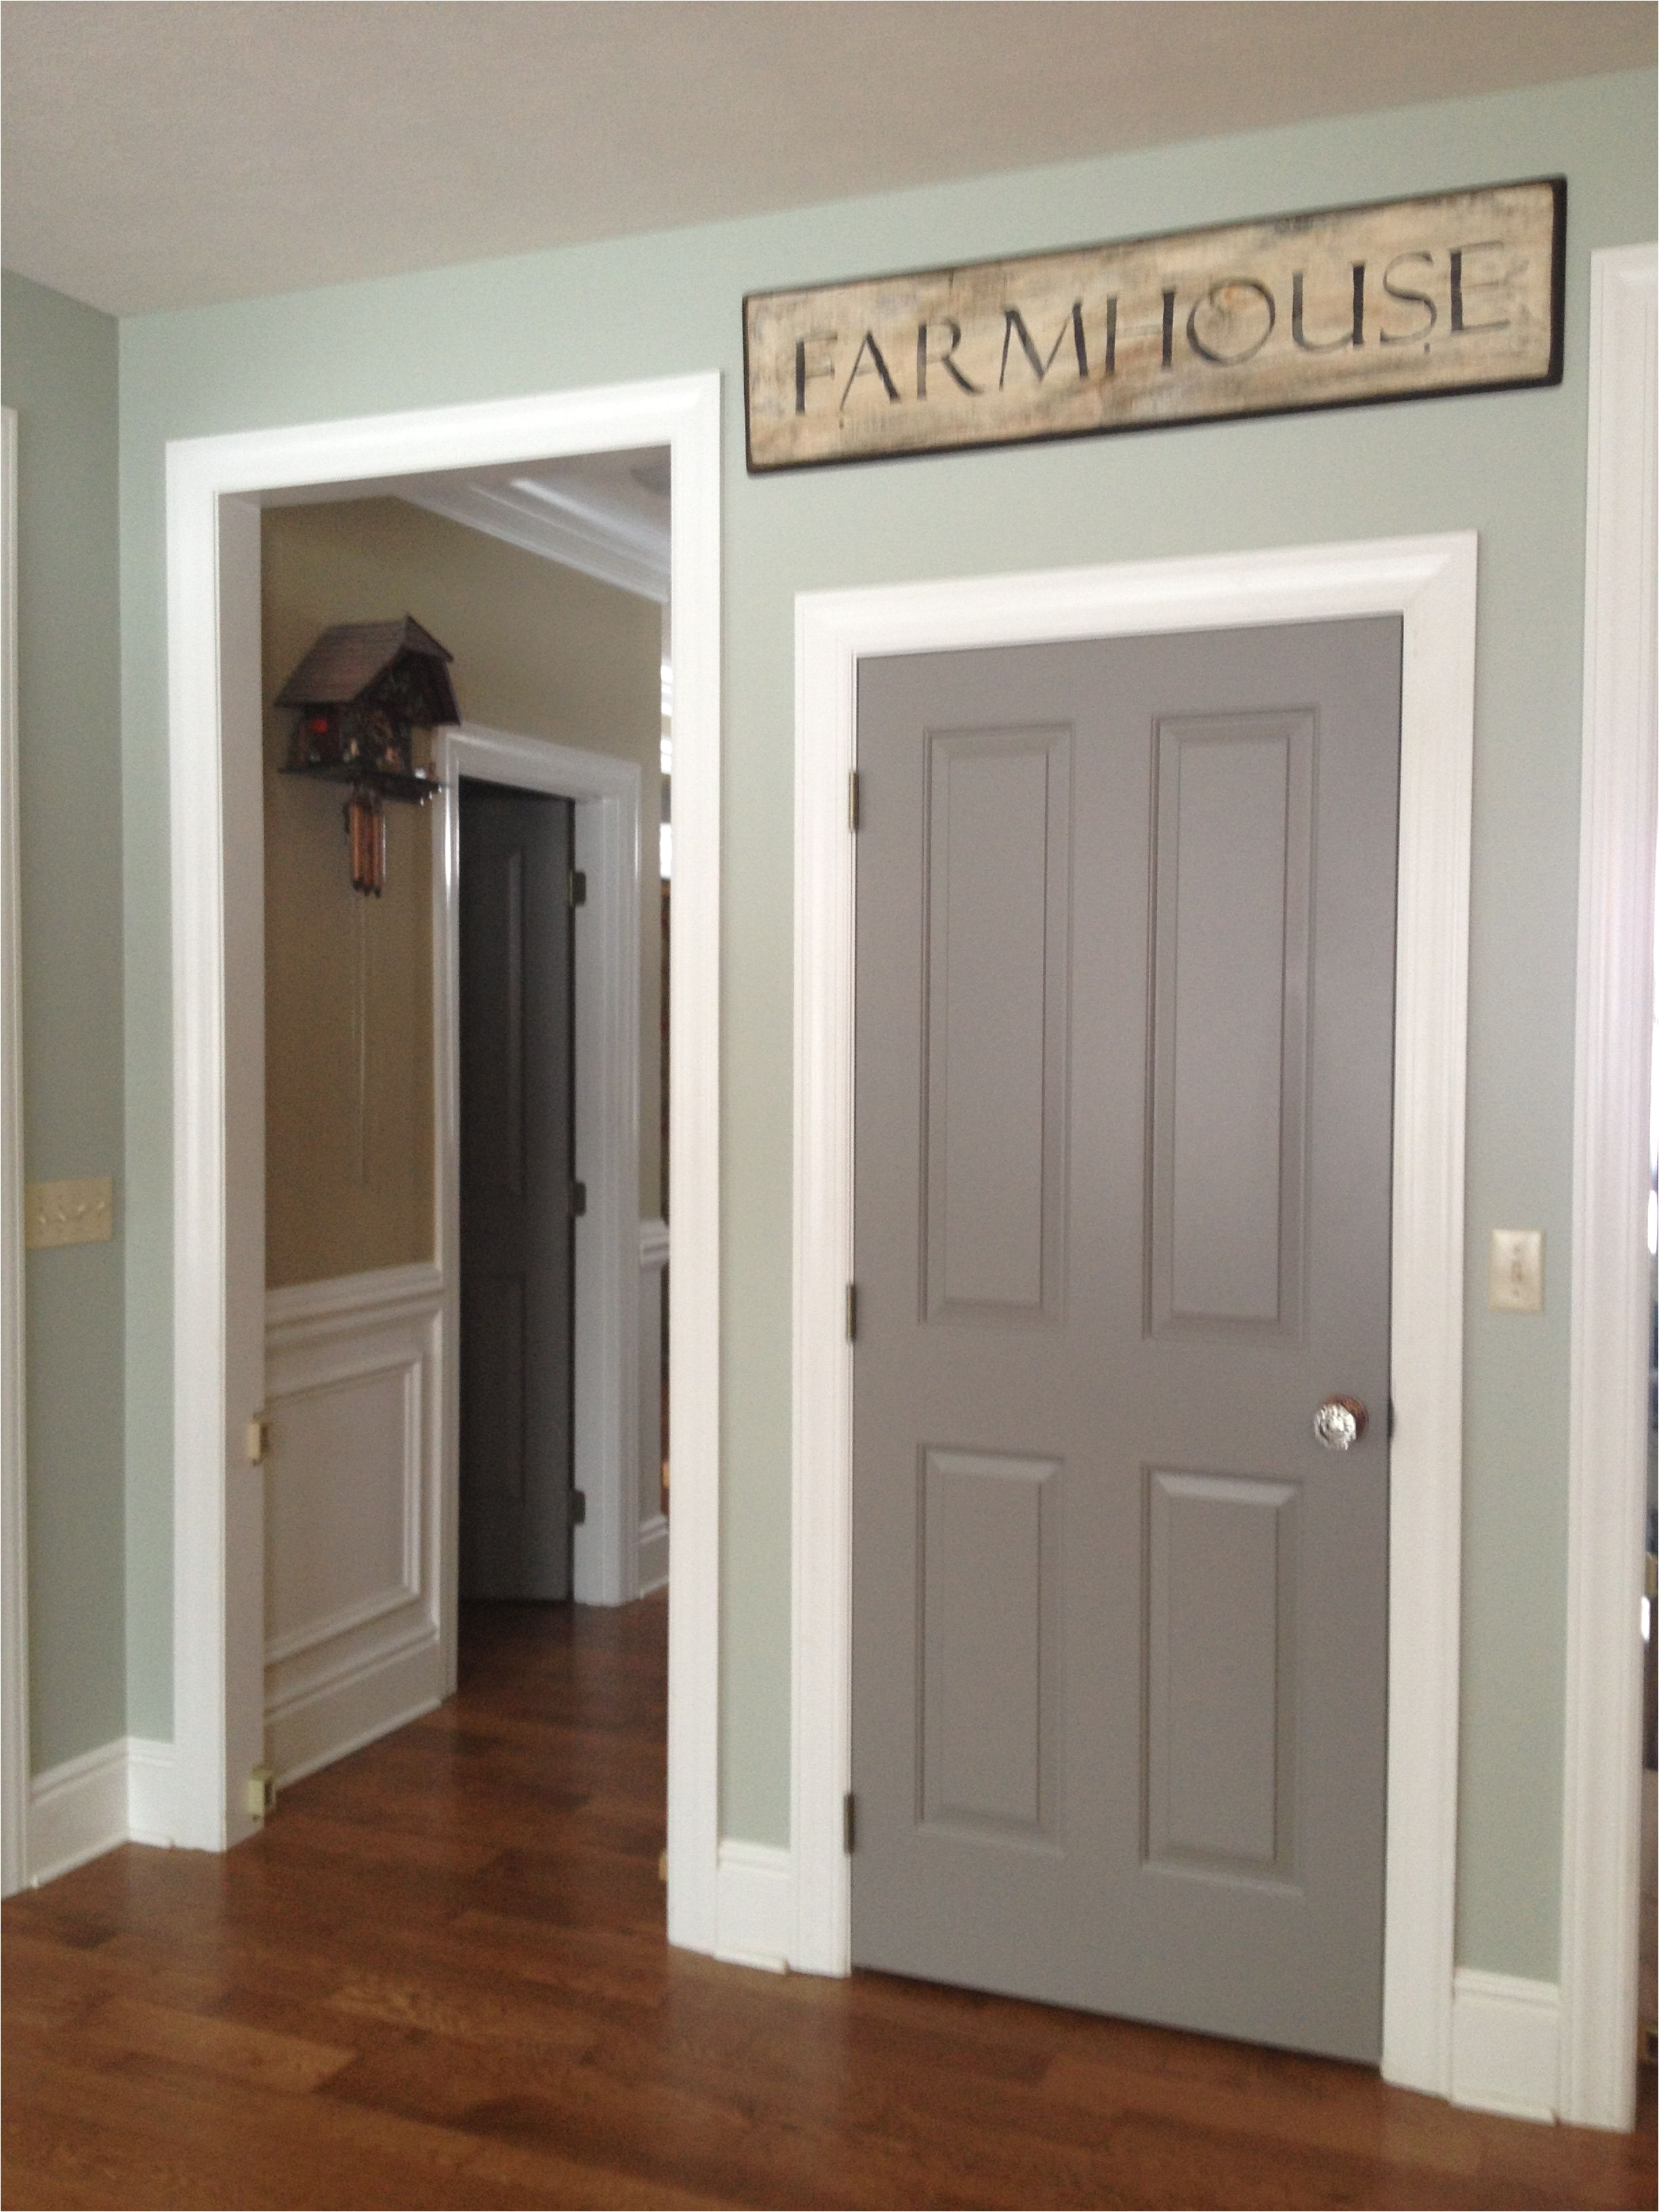 Best Paint for Interior Doors and Baseboards Sherwin Williams Dovetail Grey the Door Color is What I Would Like